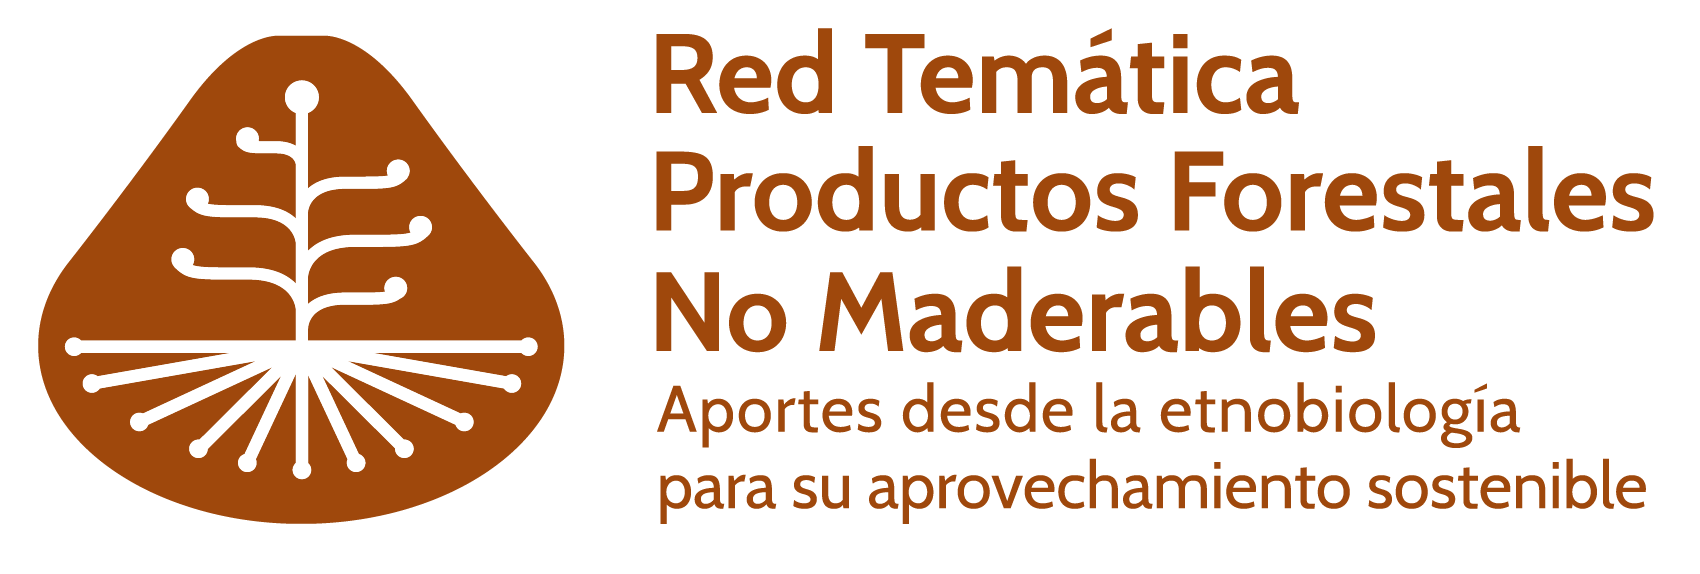 Red Tématica de Productos Forestales no Maderables